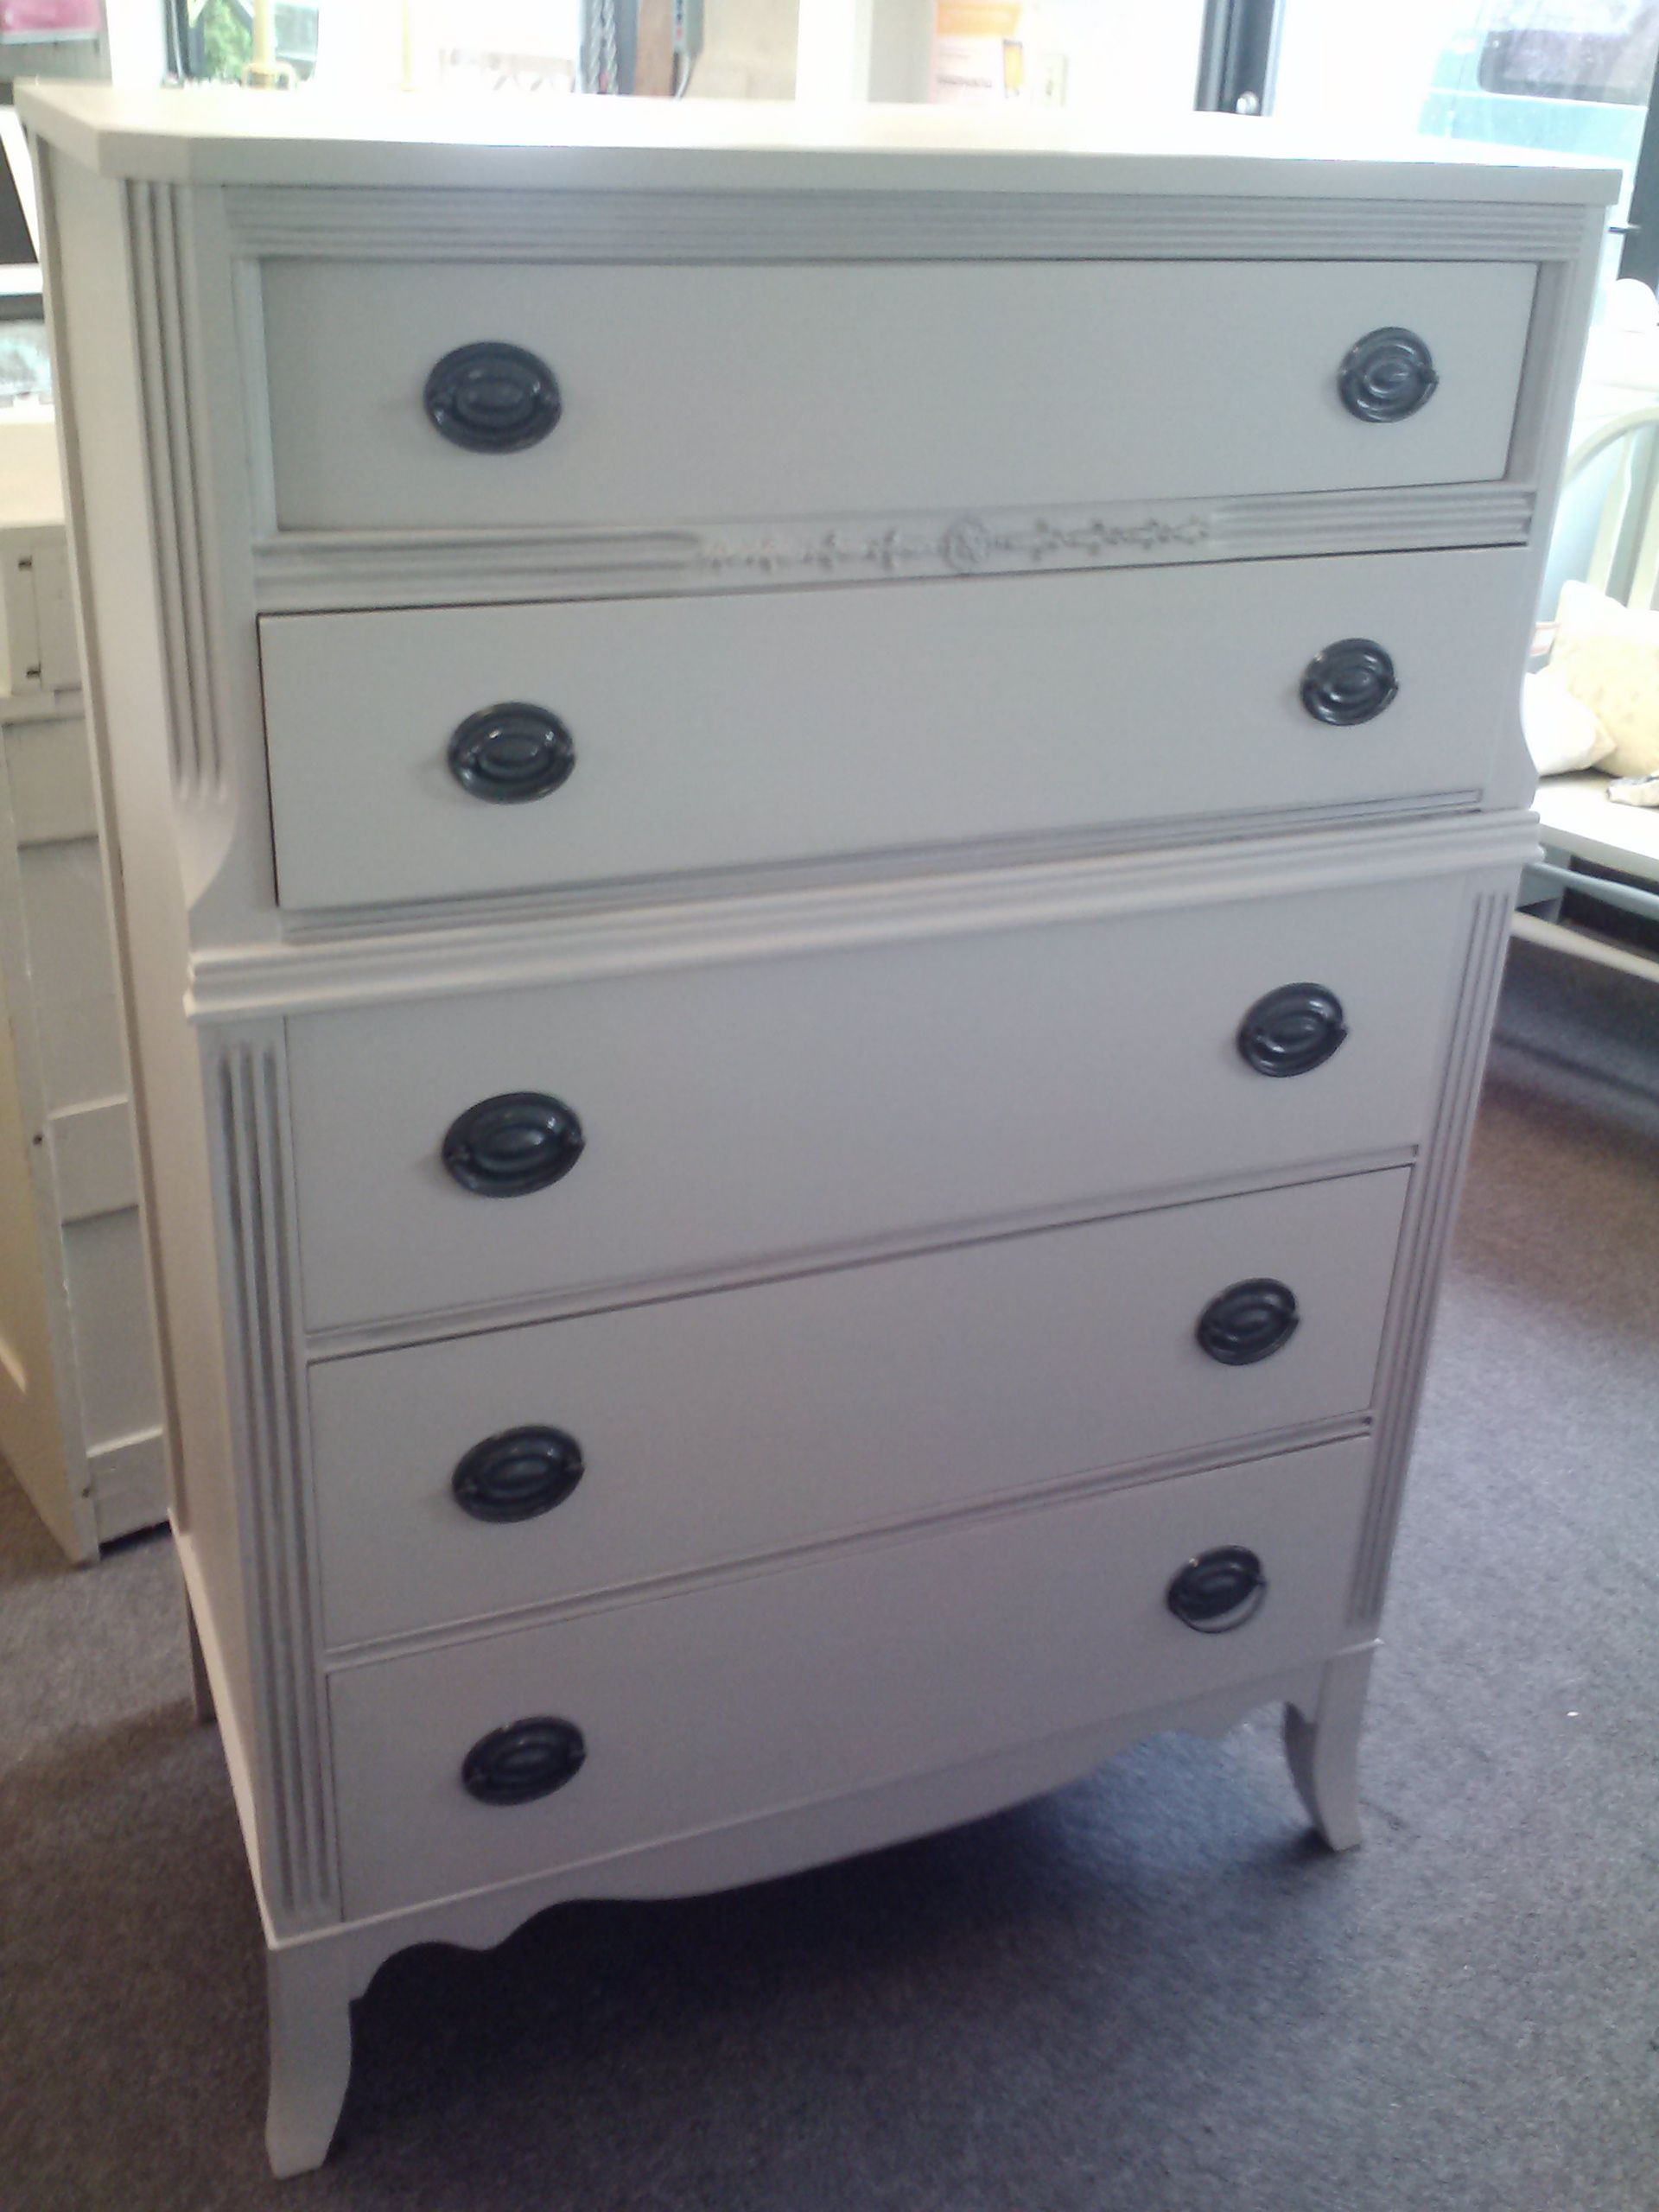 325 00 Tall Dresser With 5 Deep Drawers Painted Gray With Pewter Glaze On Edge Shabby Chic Vintage Painted Dresser Di Furniture Katie Homes Vintage Furniture